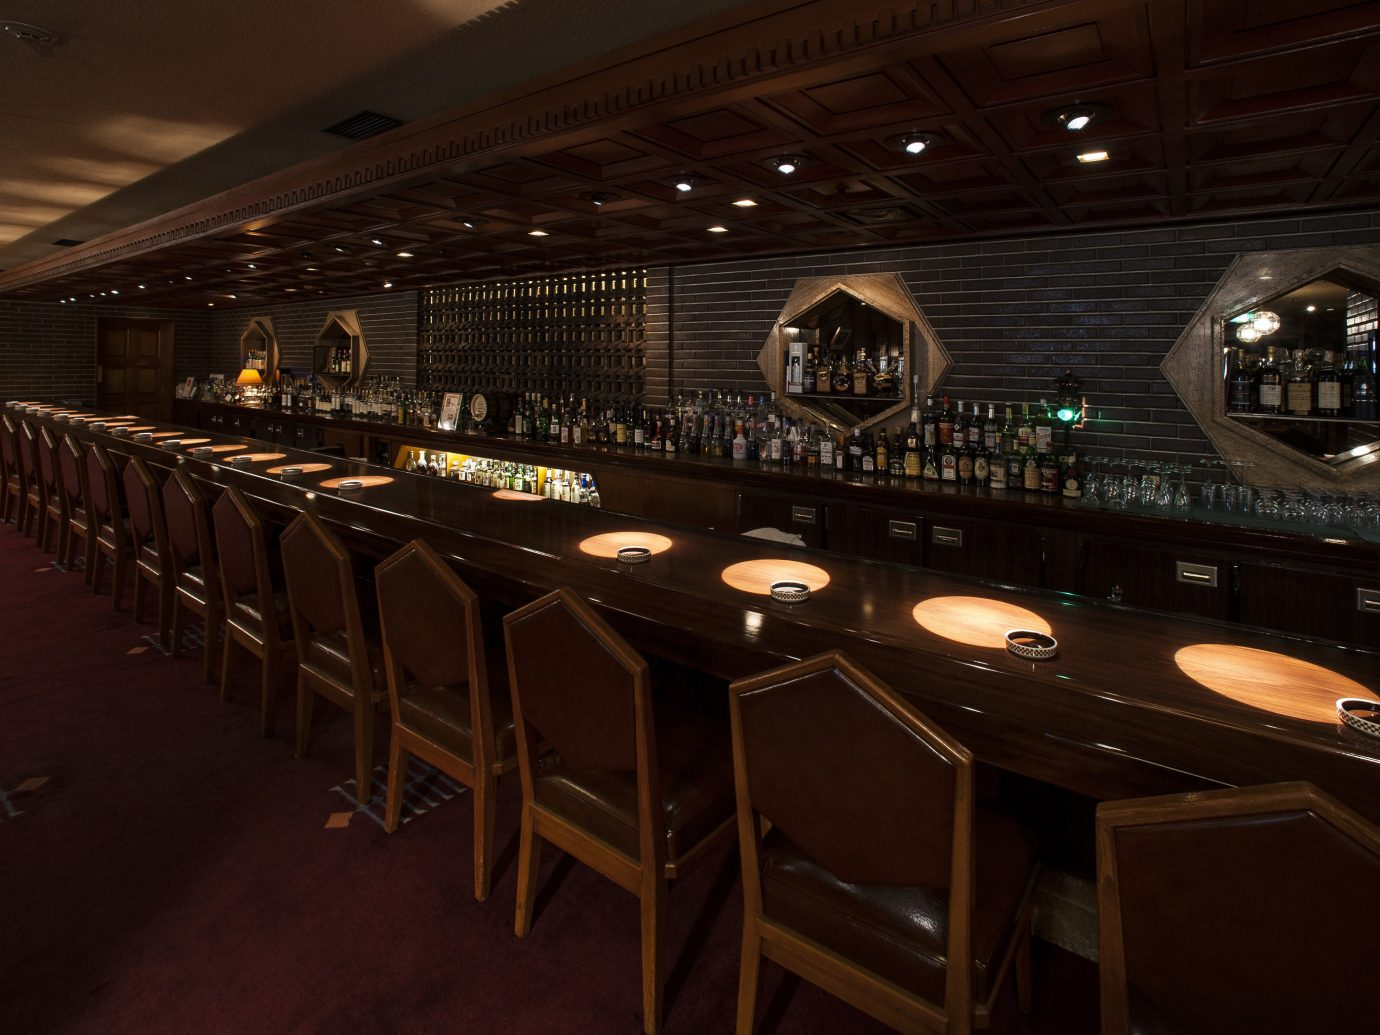 Hotels Japan Tokyo indoor floor ceiling auditorium stage function hall Bar restaurant